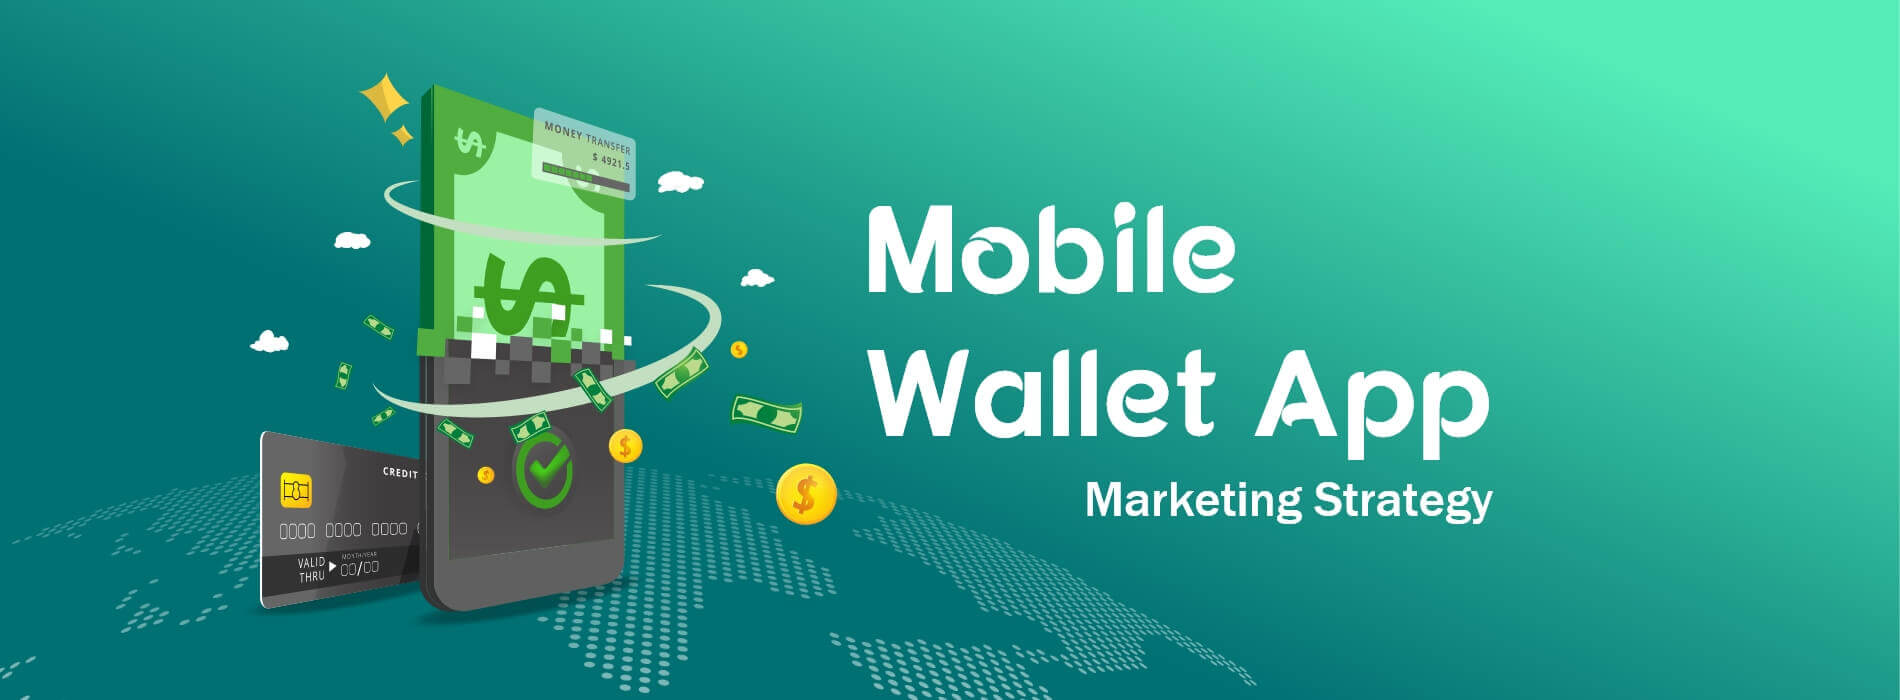 Key Strategies Adopted by Mobile Wallet App Companies for Driving Consumers